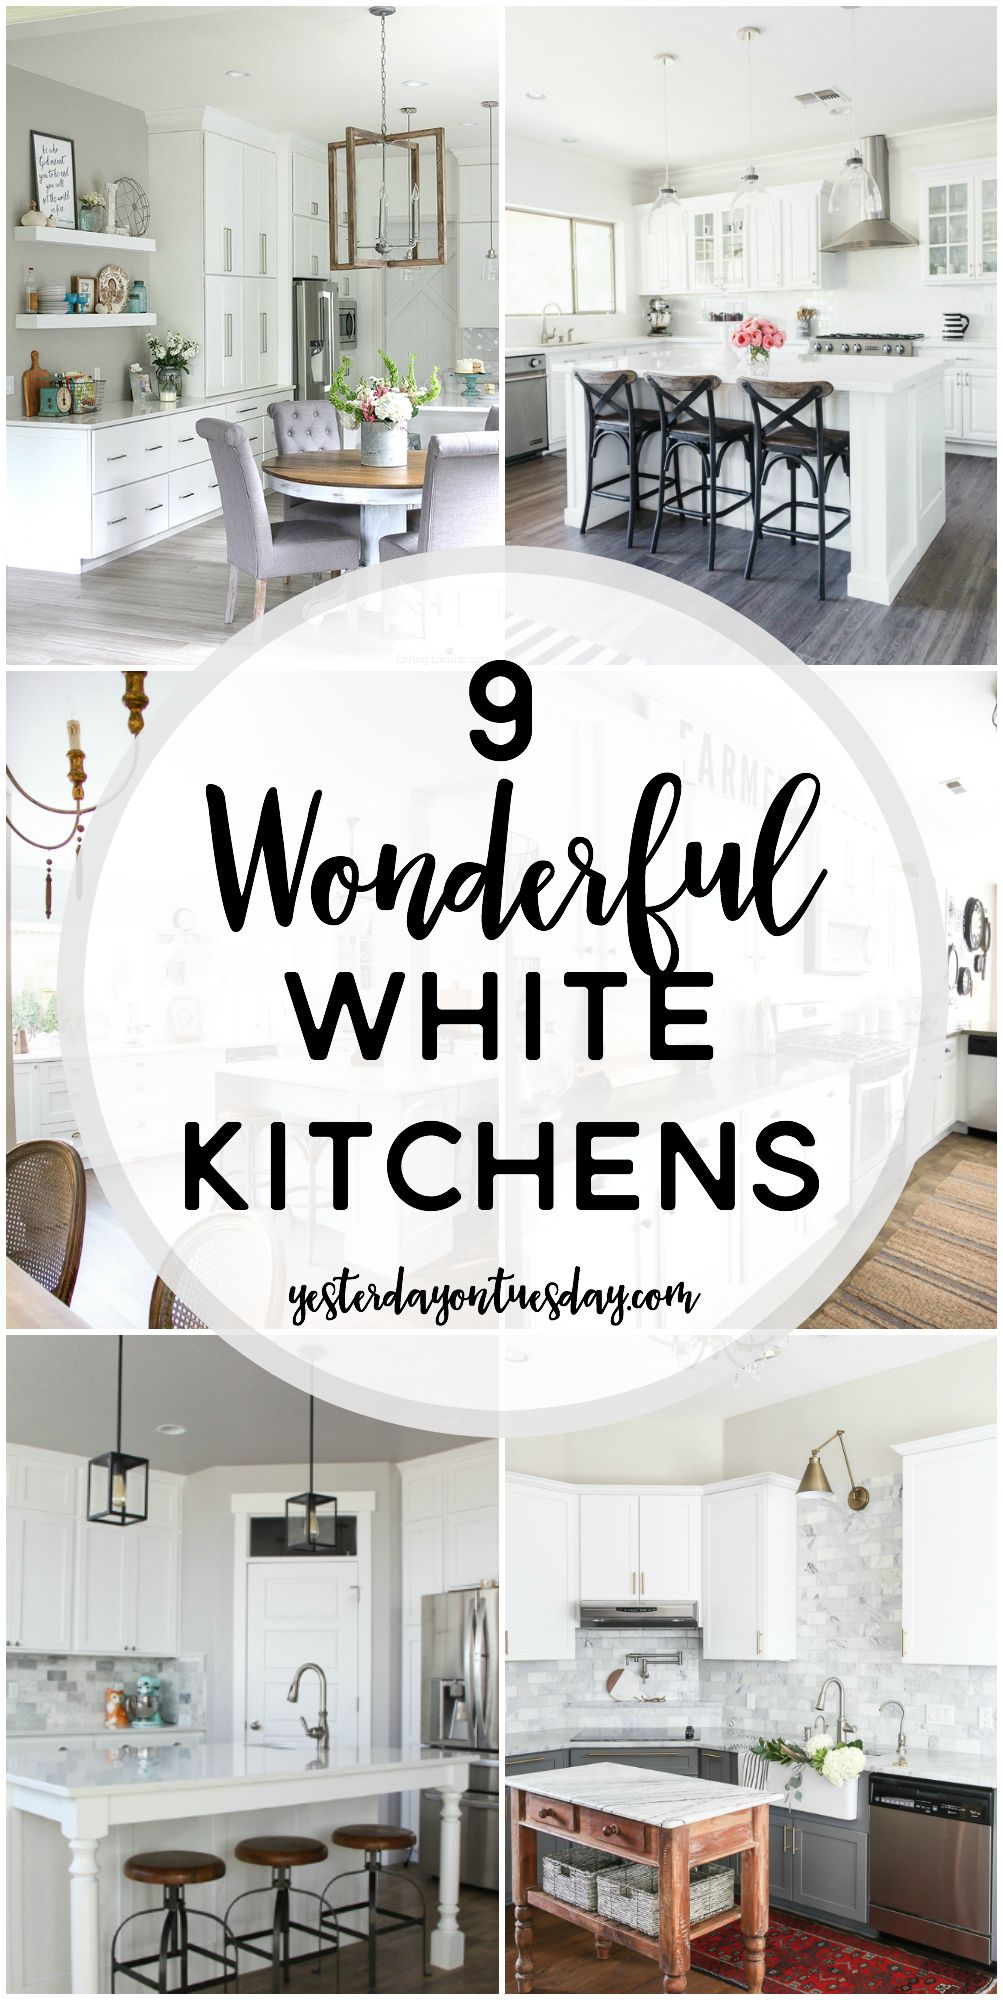 9 Wonderful White Kitchens: A collection if dreamy white kitchens ...